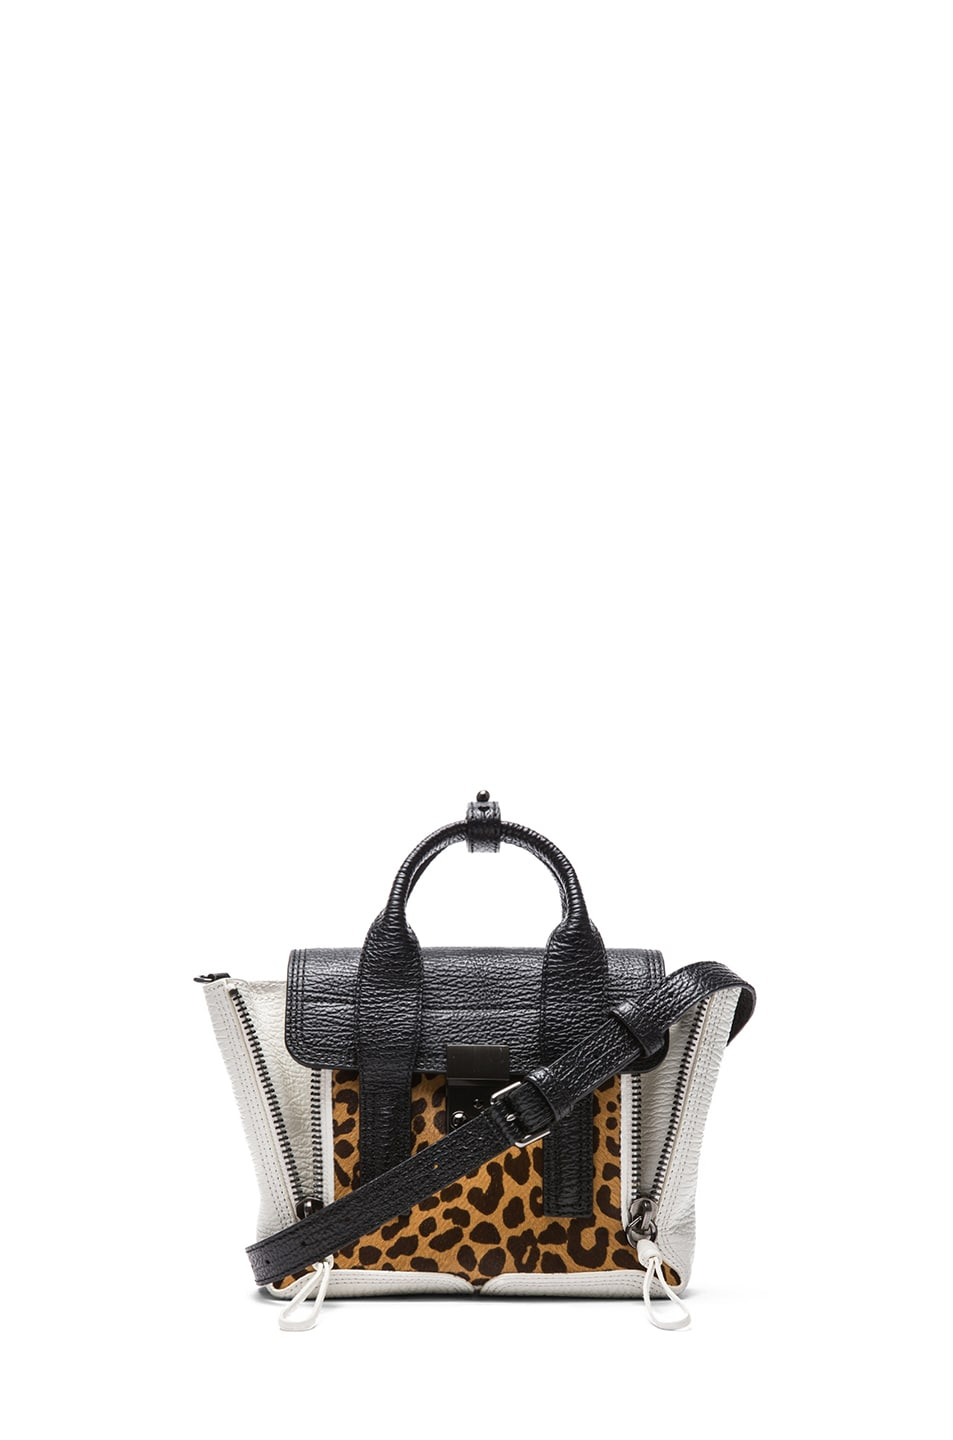 Image 1 of 3.1 phillip lim Mini Pashli Satchel in Natural Leopard